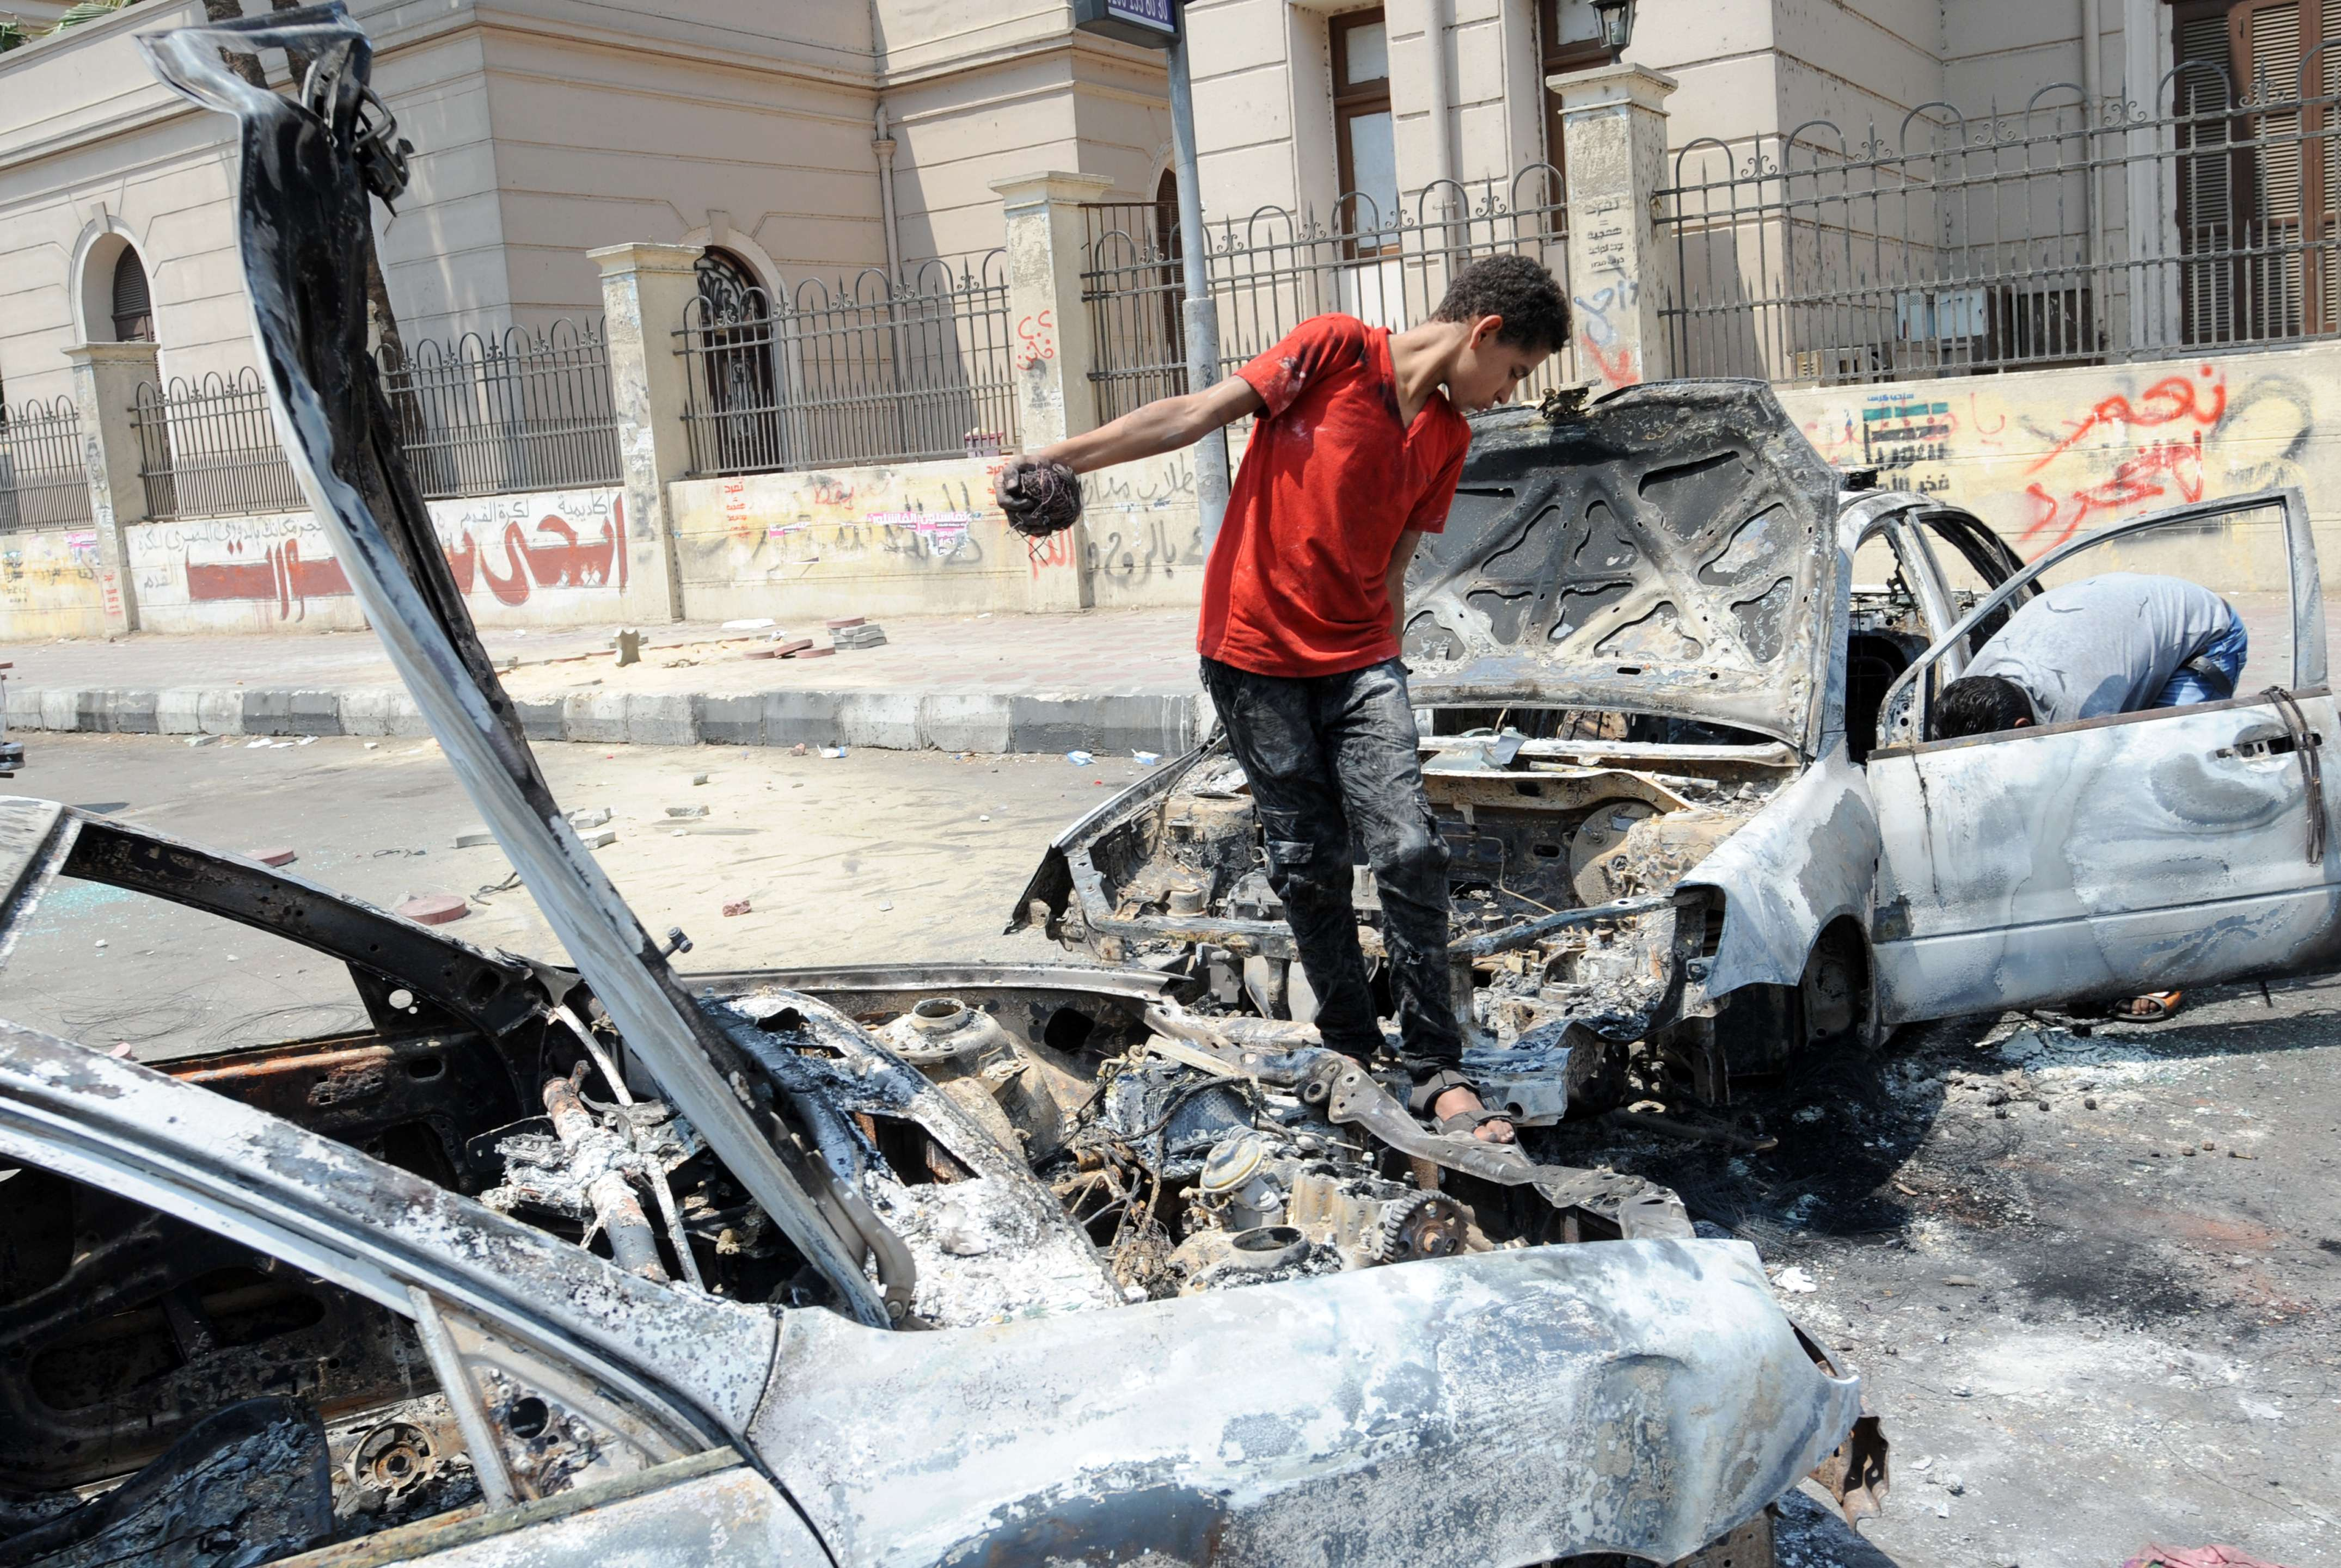 An Egyption youth inspects a burnt car near Cairo University on July 23, 2013, where supporters of Egypt's deposed president Mohamed Mursi are holding an open sit in. (AFP Photo)